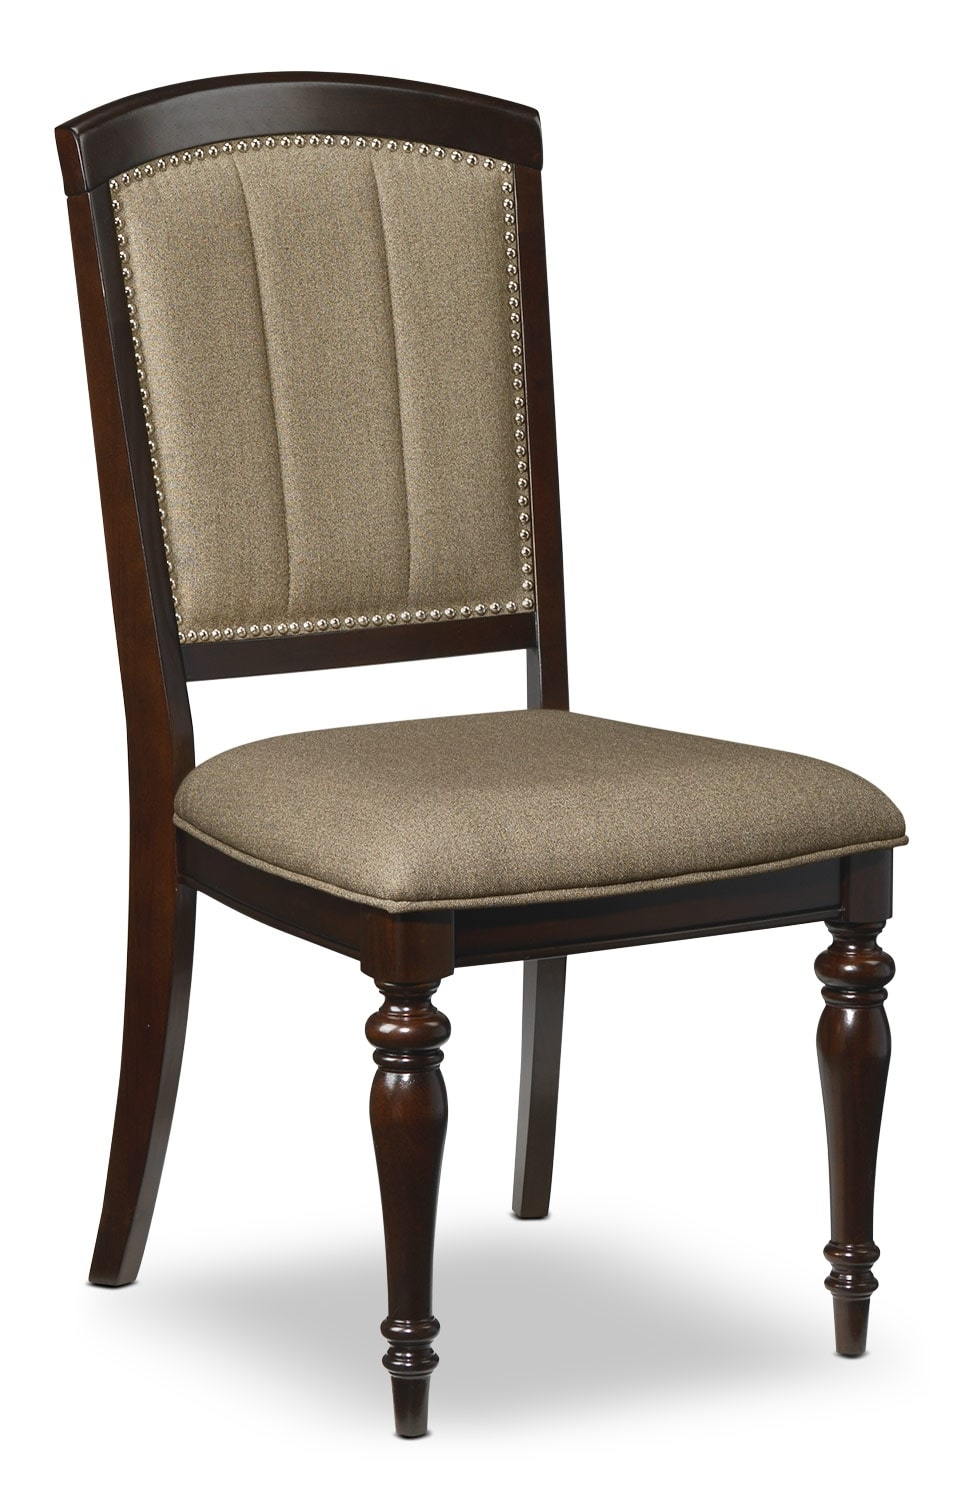 Dining Room Furniture - Thoreaux Side Chair - Dark Cherry